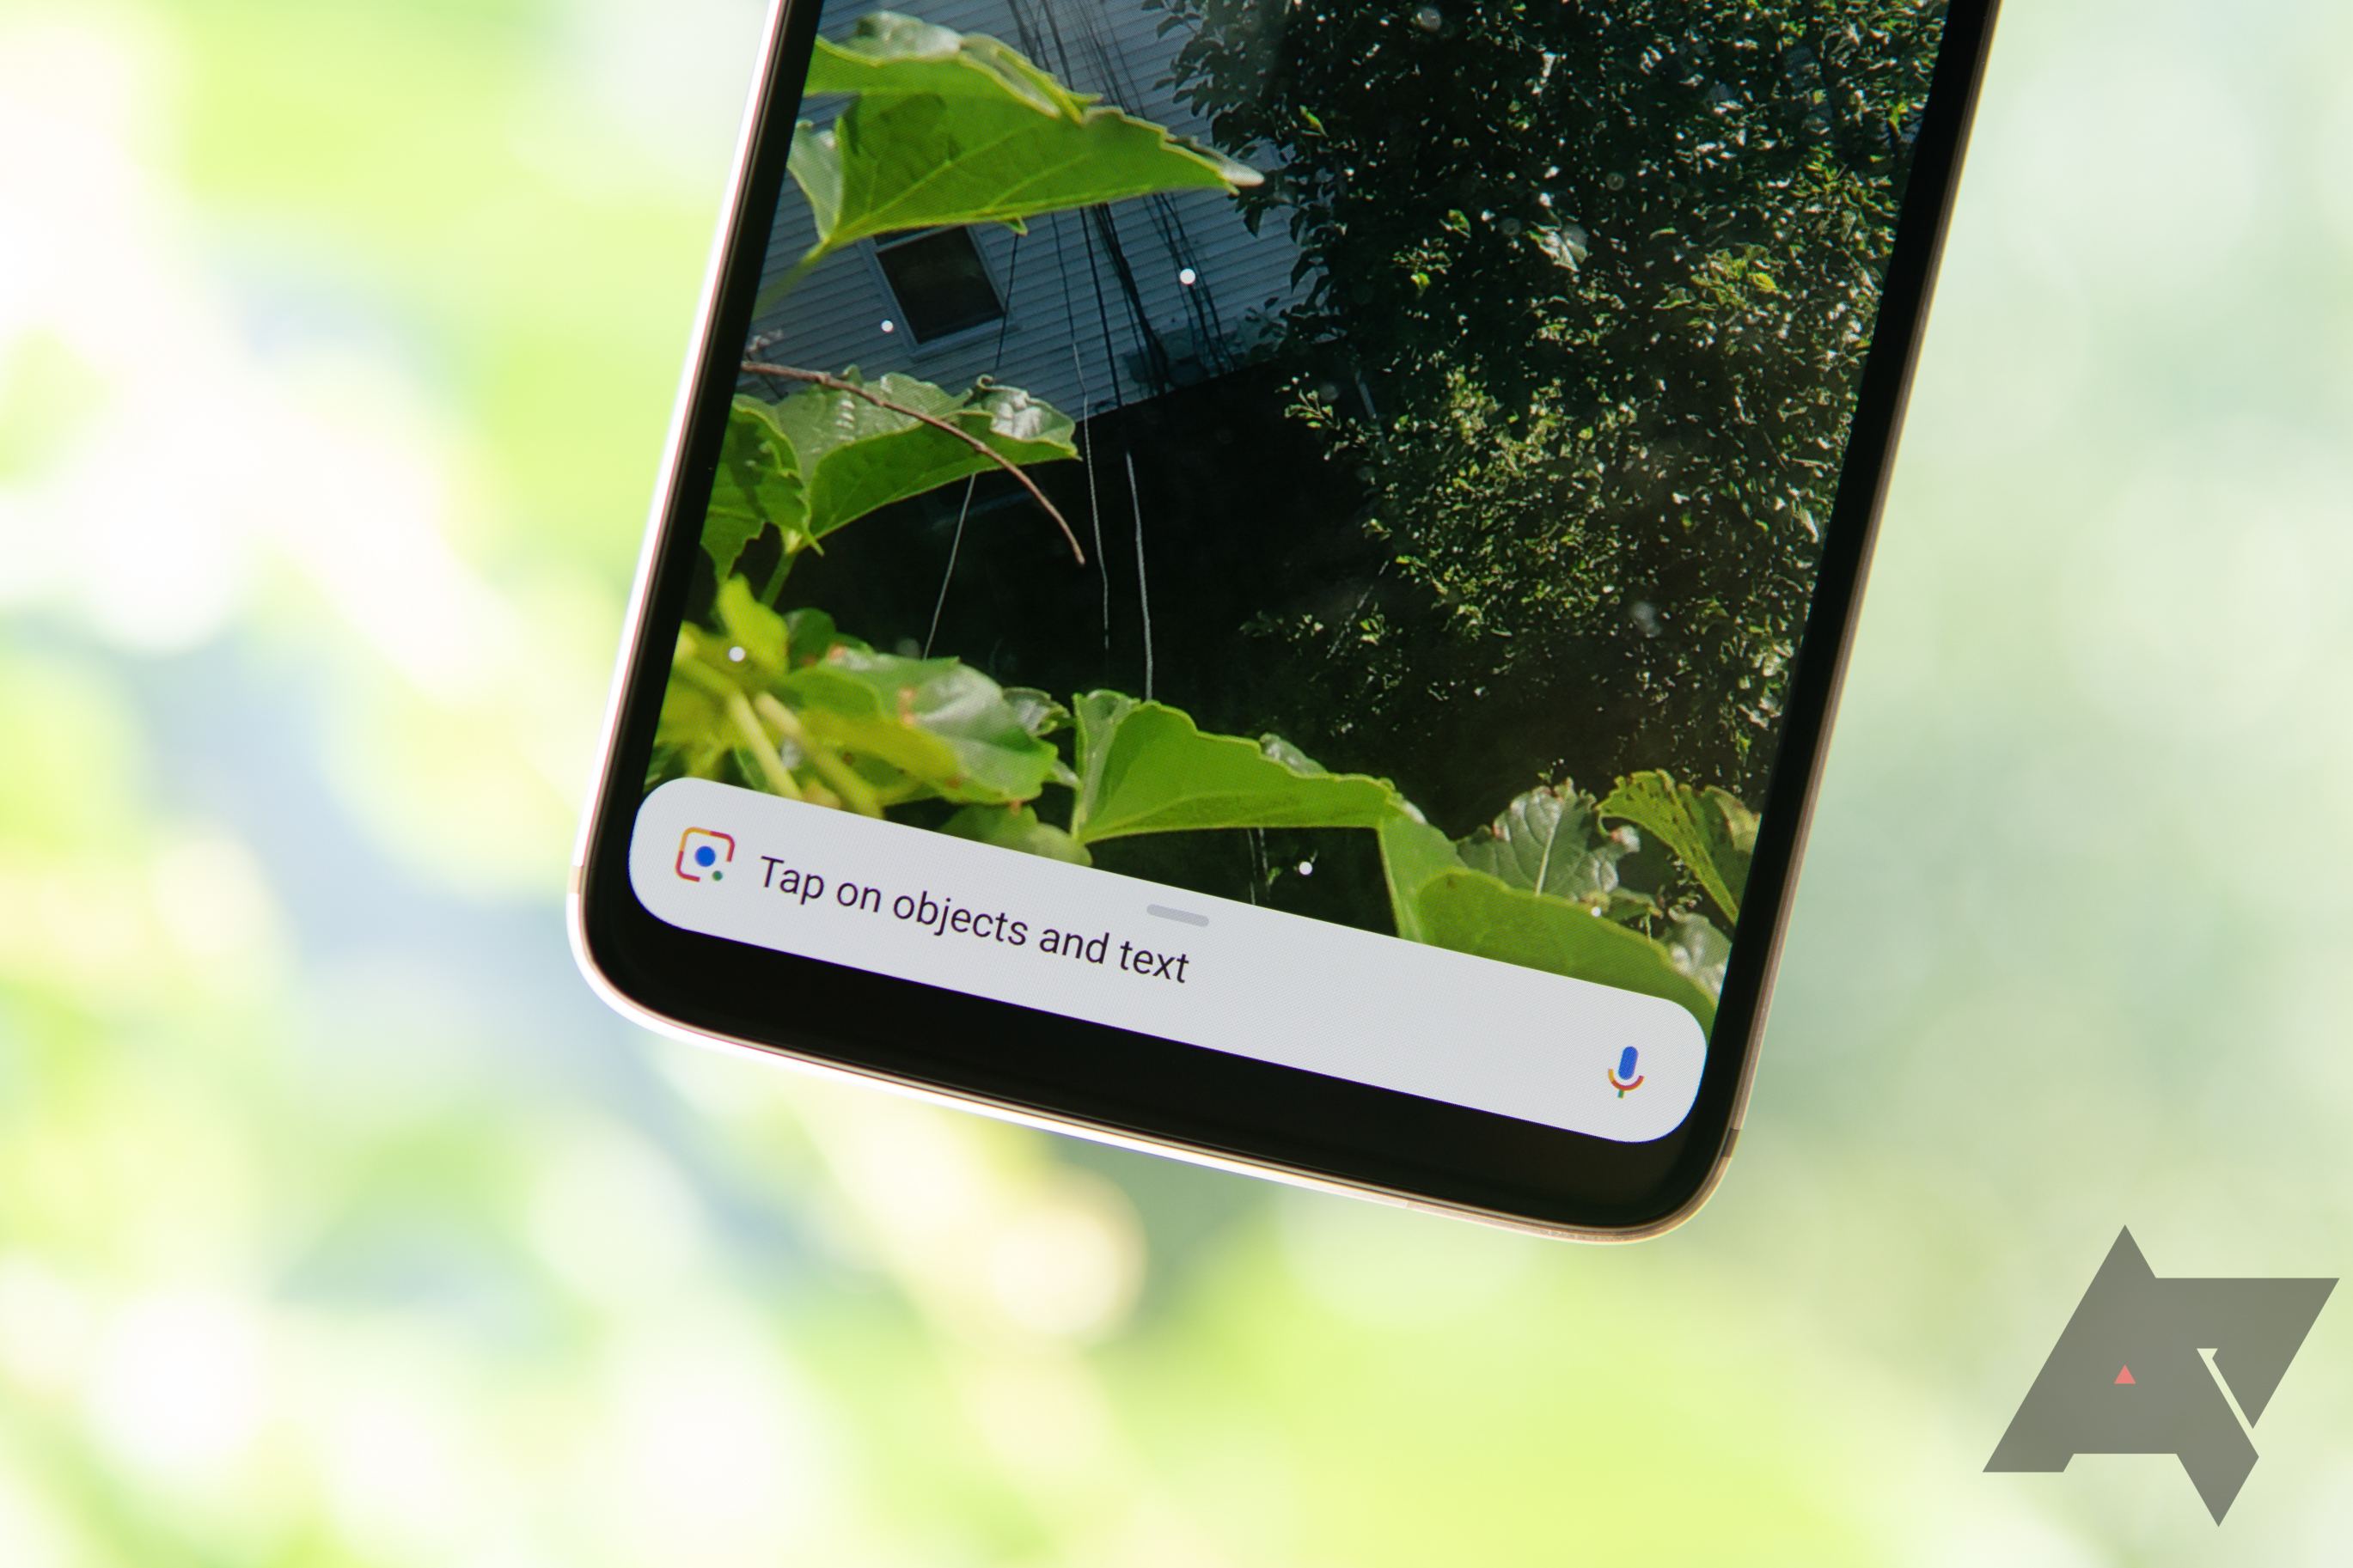 OnePlus Camera v2 7 19 adds Google Lens shortcut [APK Download]